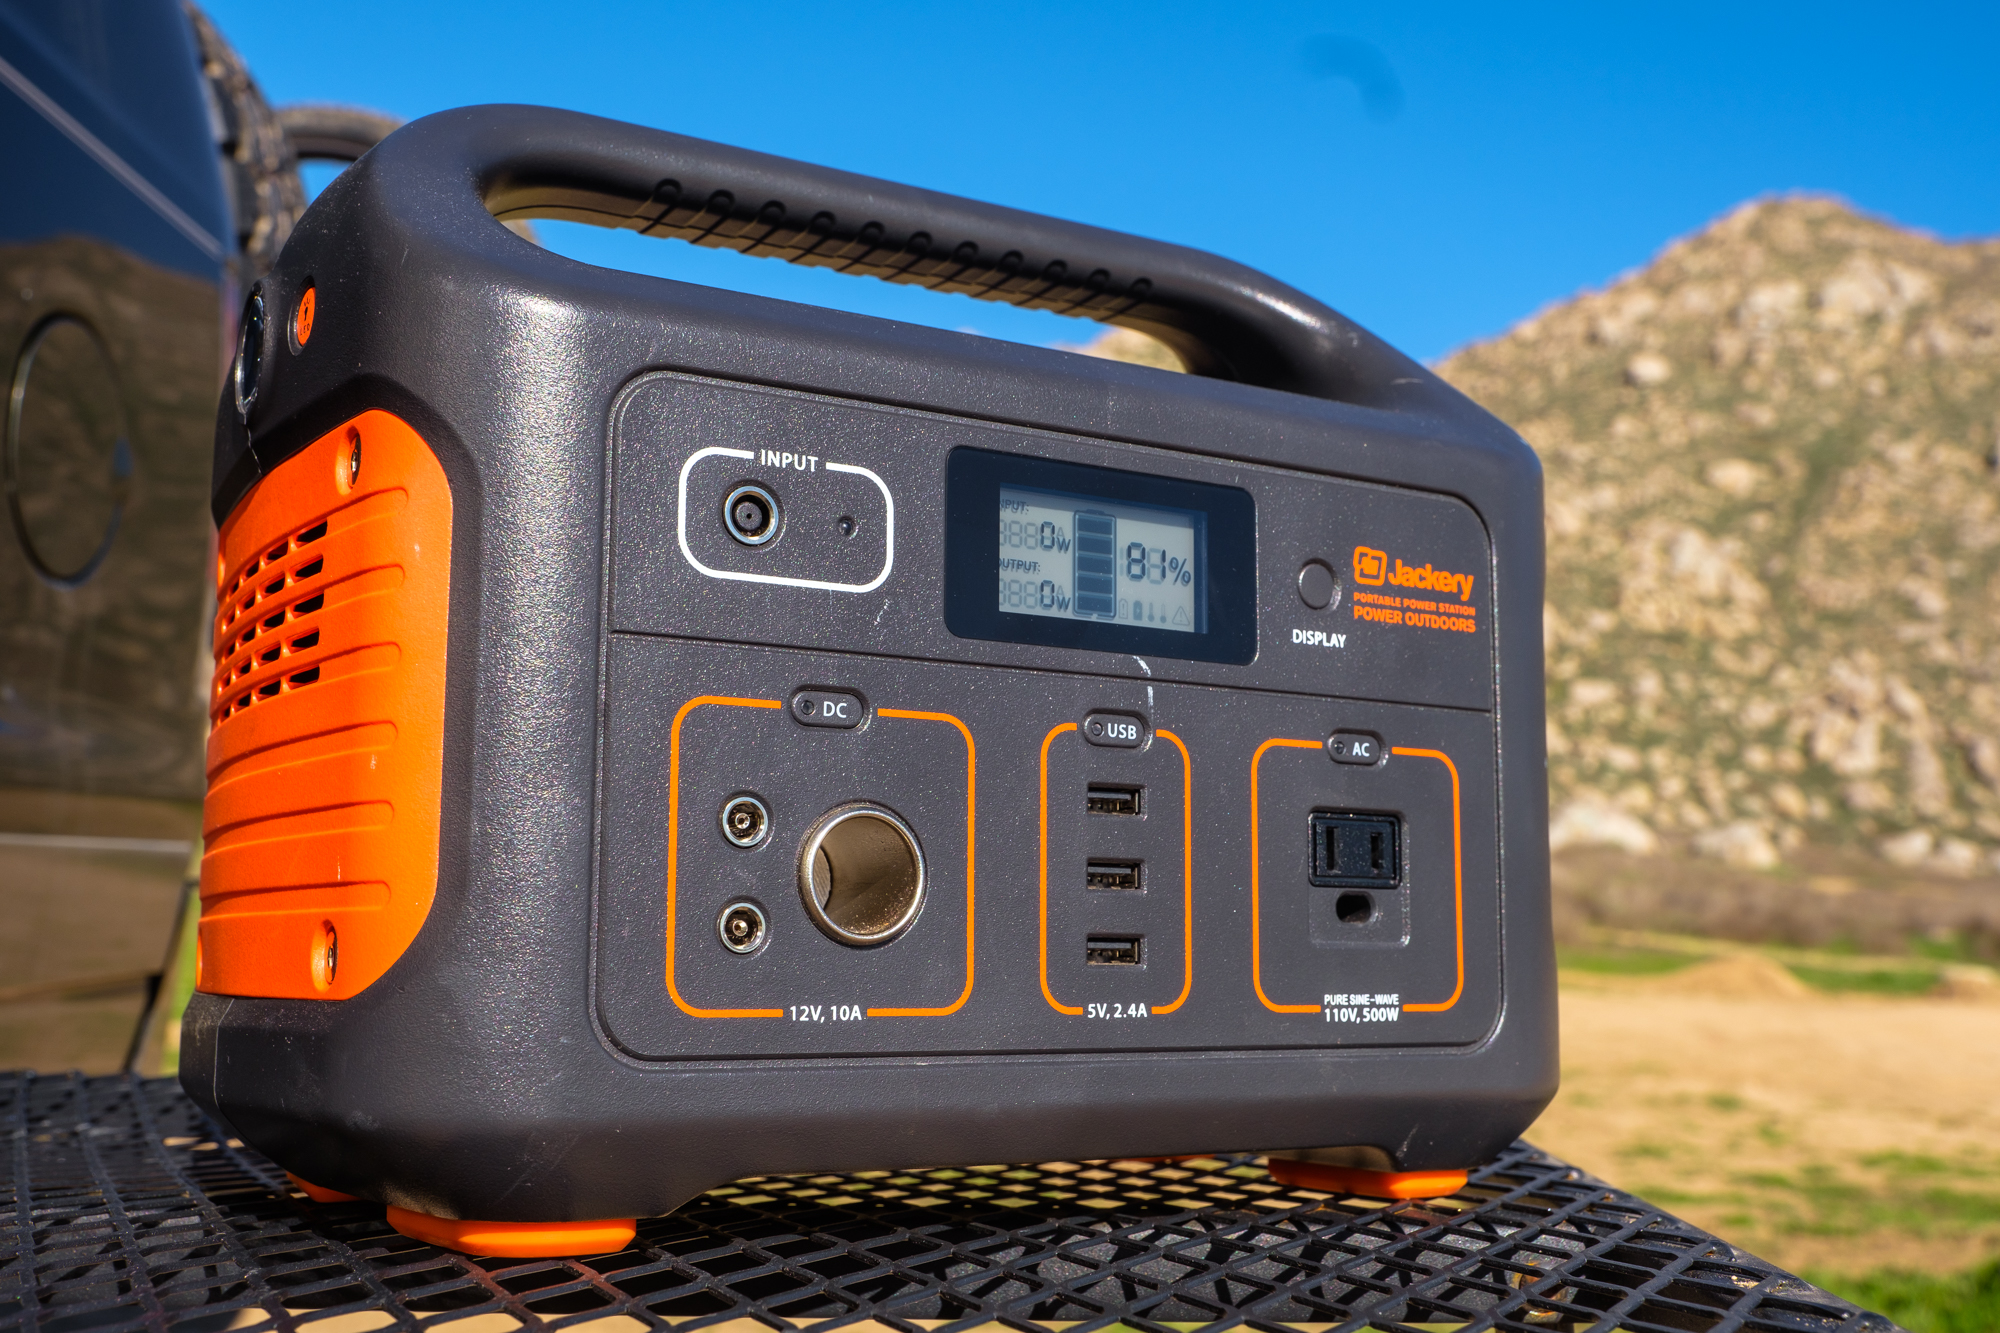 Is The Jackery Explorer 500 The Best Portable Power Station For The Money? - Expedition Portal